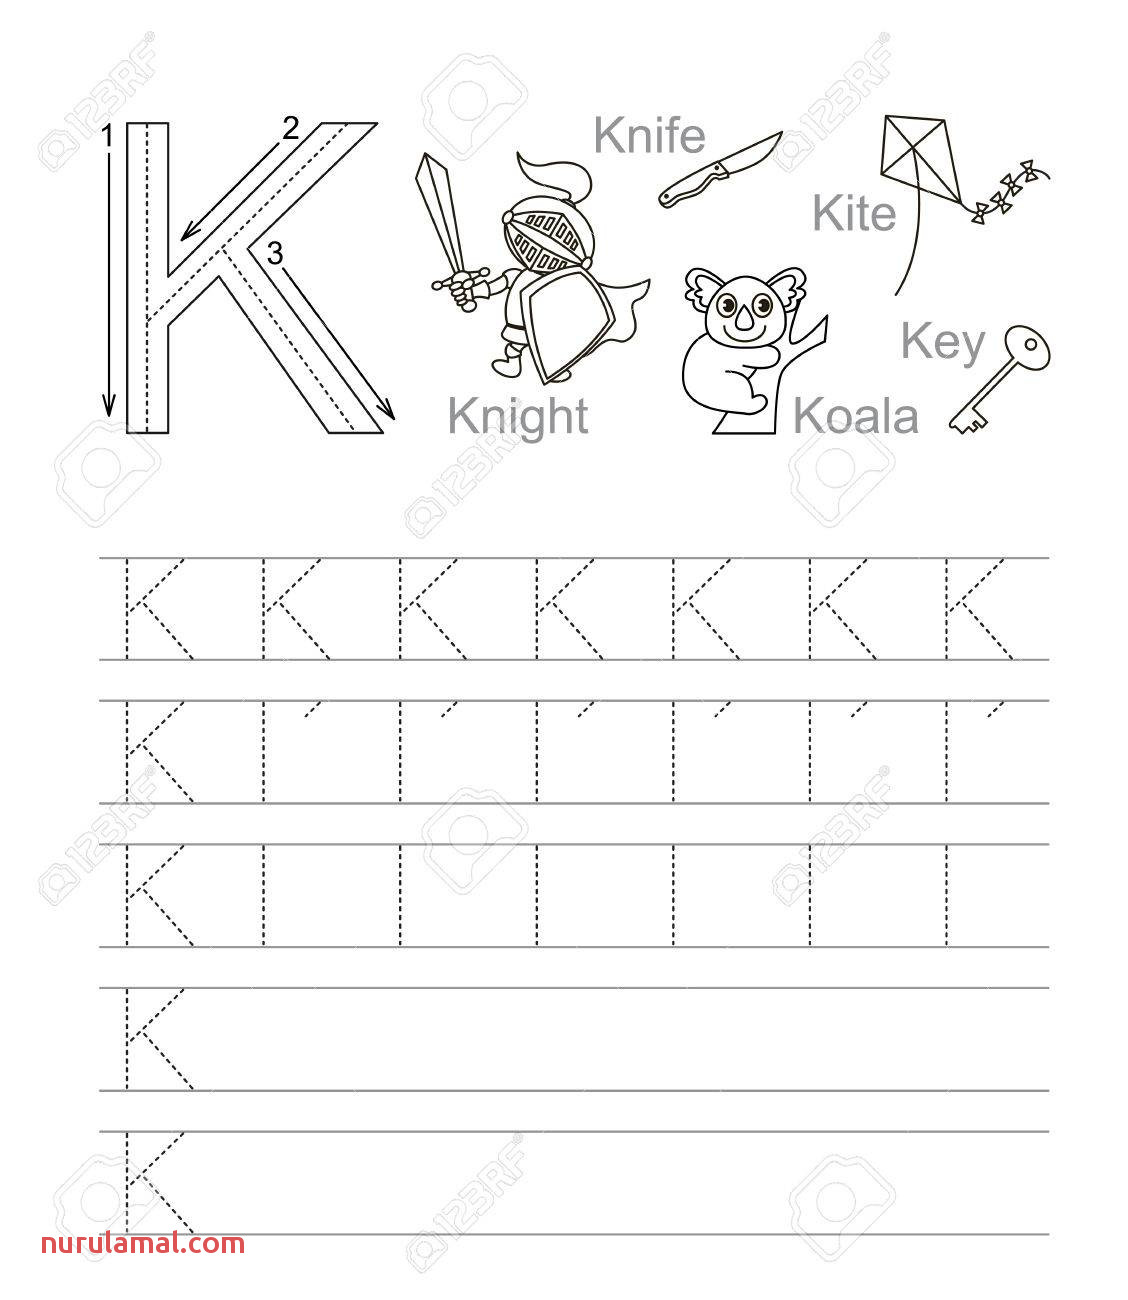 letter worksheet tracing worksheetstable coloring book alphabets for kids pages adults trace free